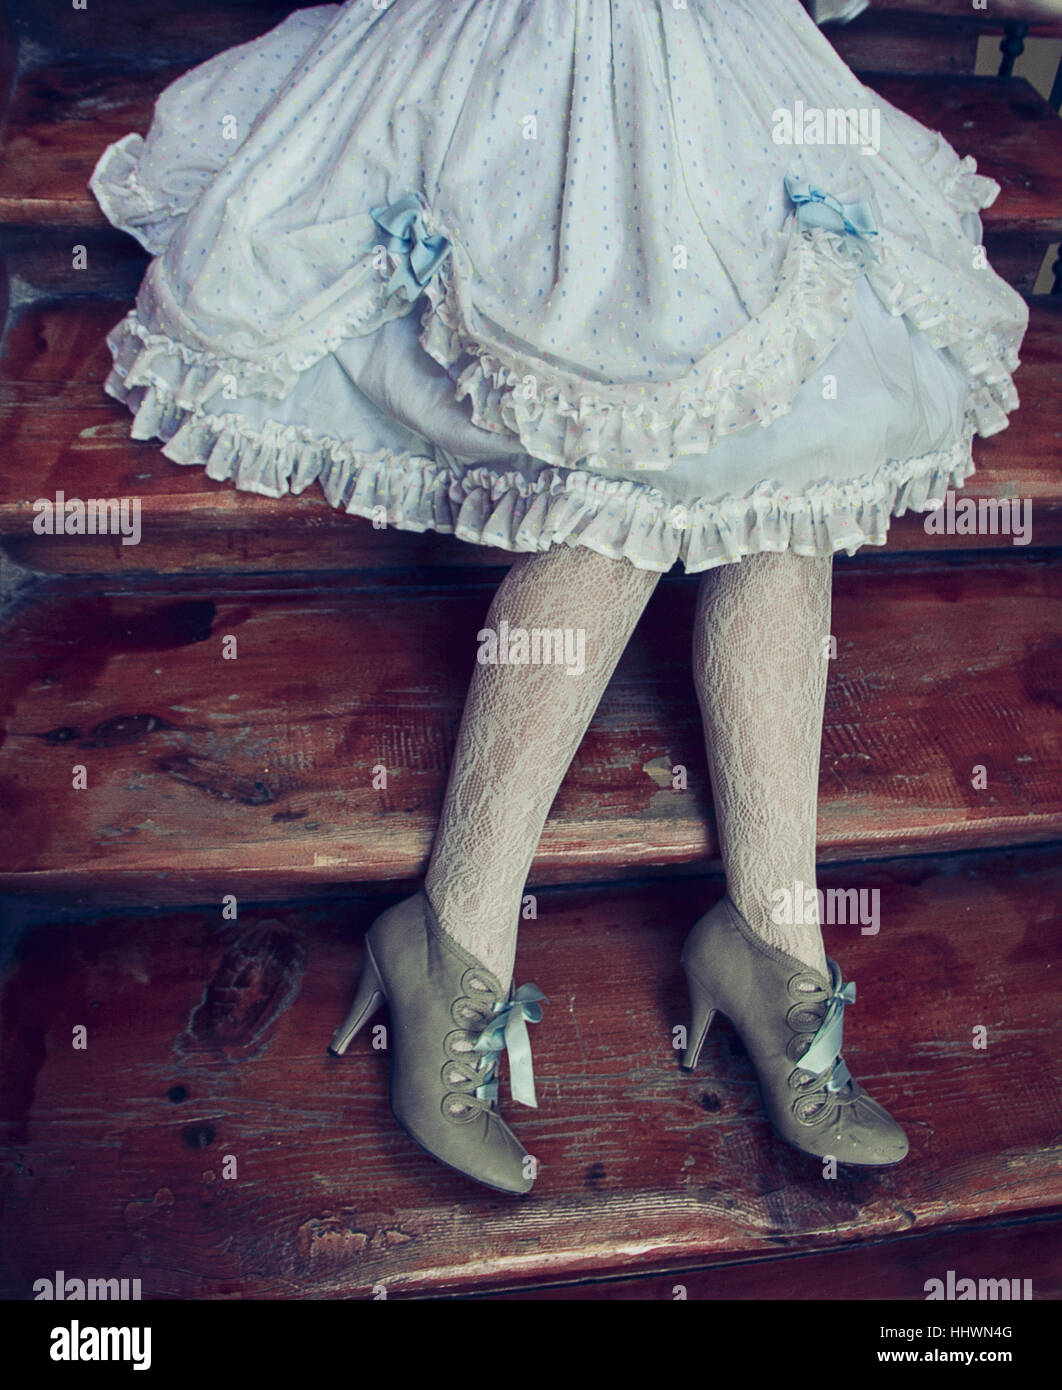 Woman leg's wearing vintage dress, tights and shoes - Stock Image